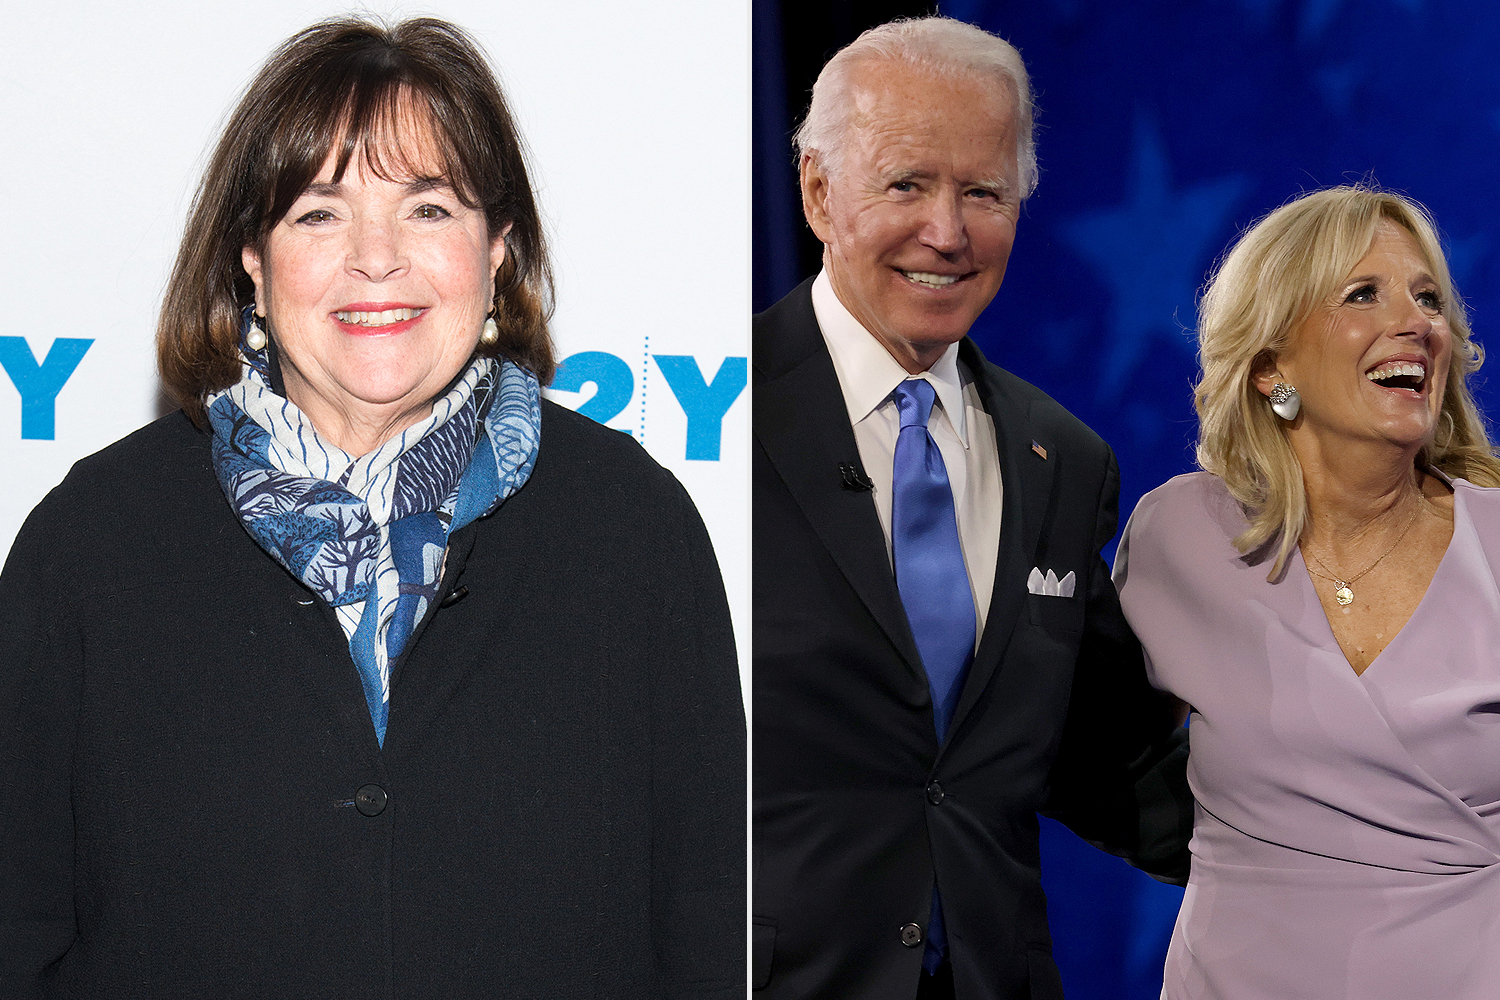 Ina Garten, Joe and Jill Biden